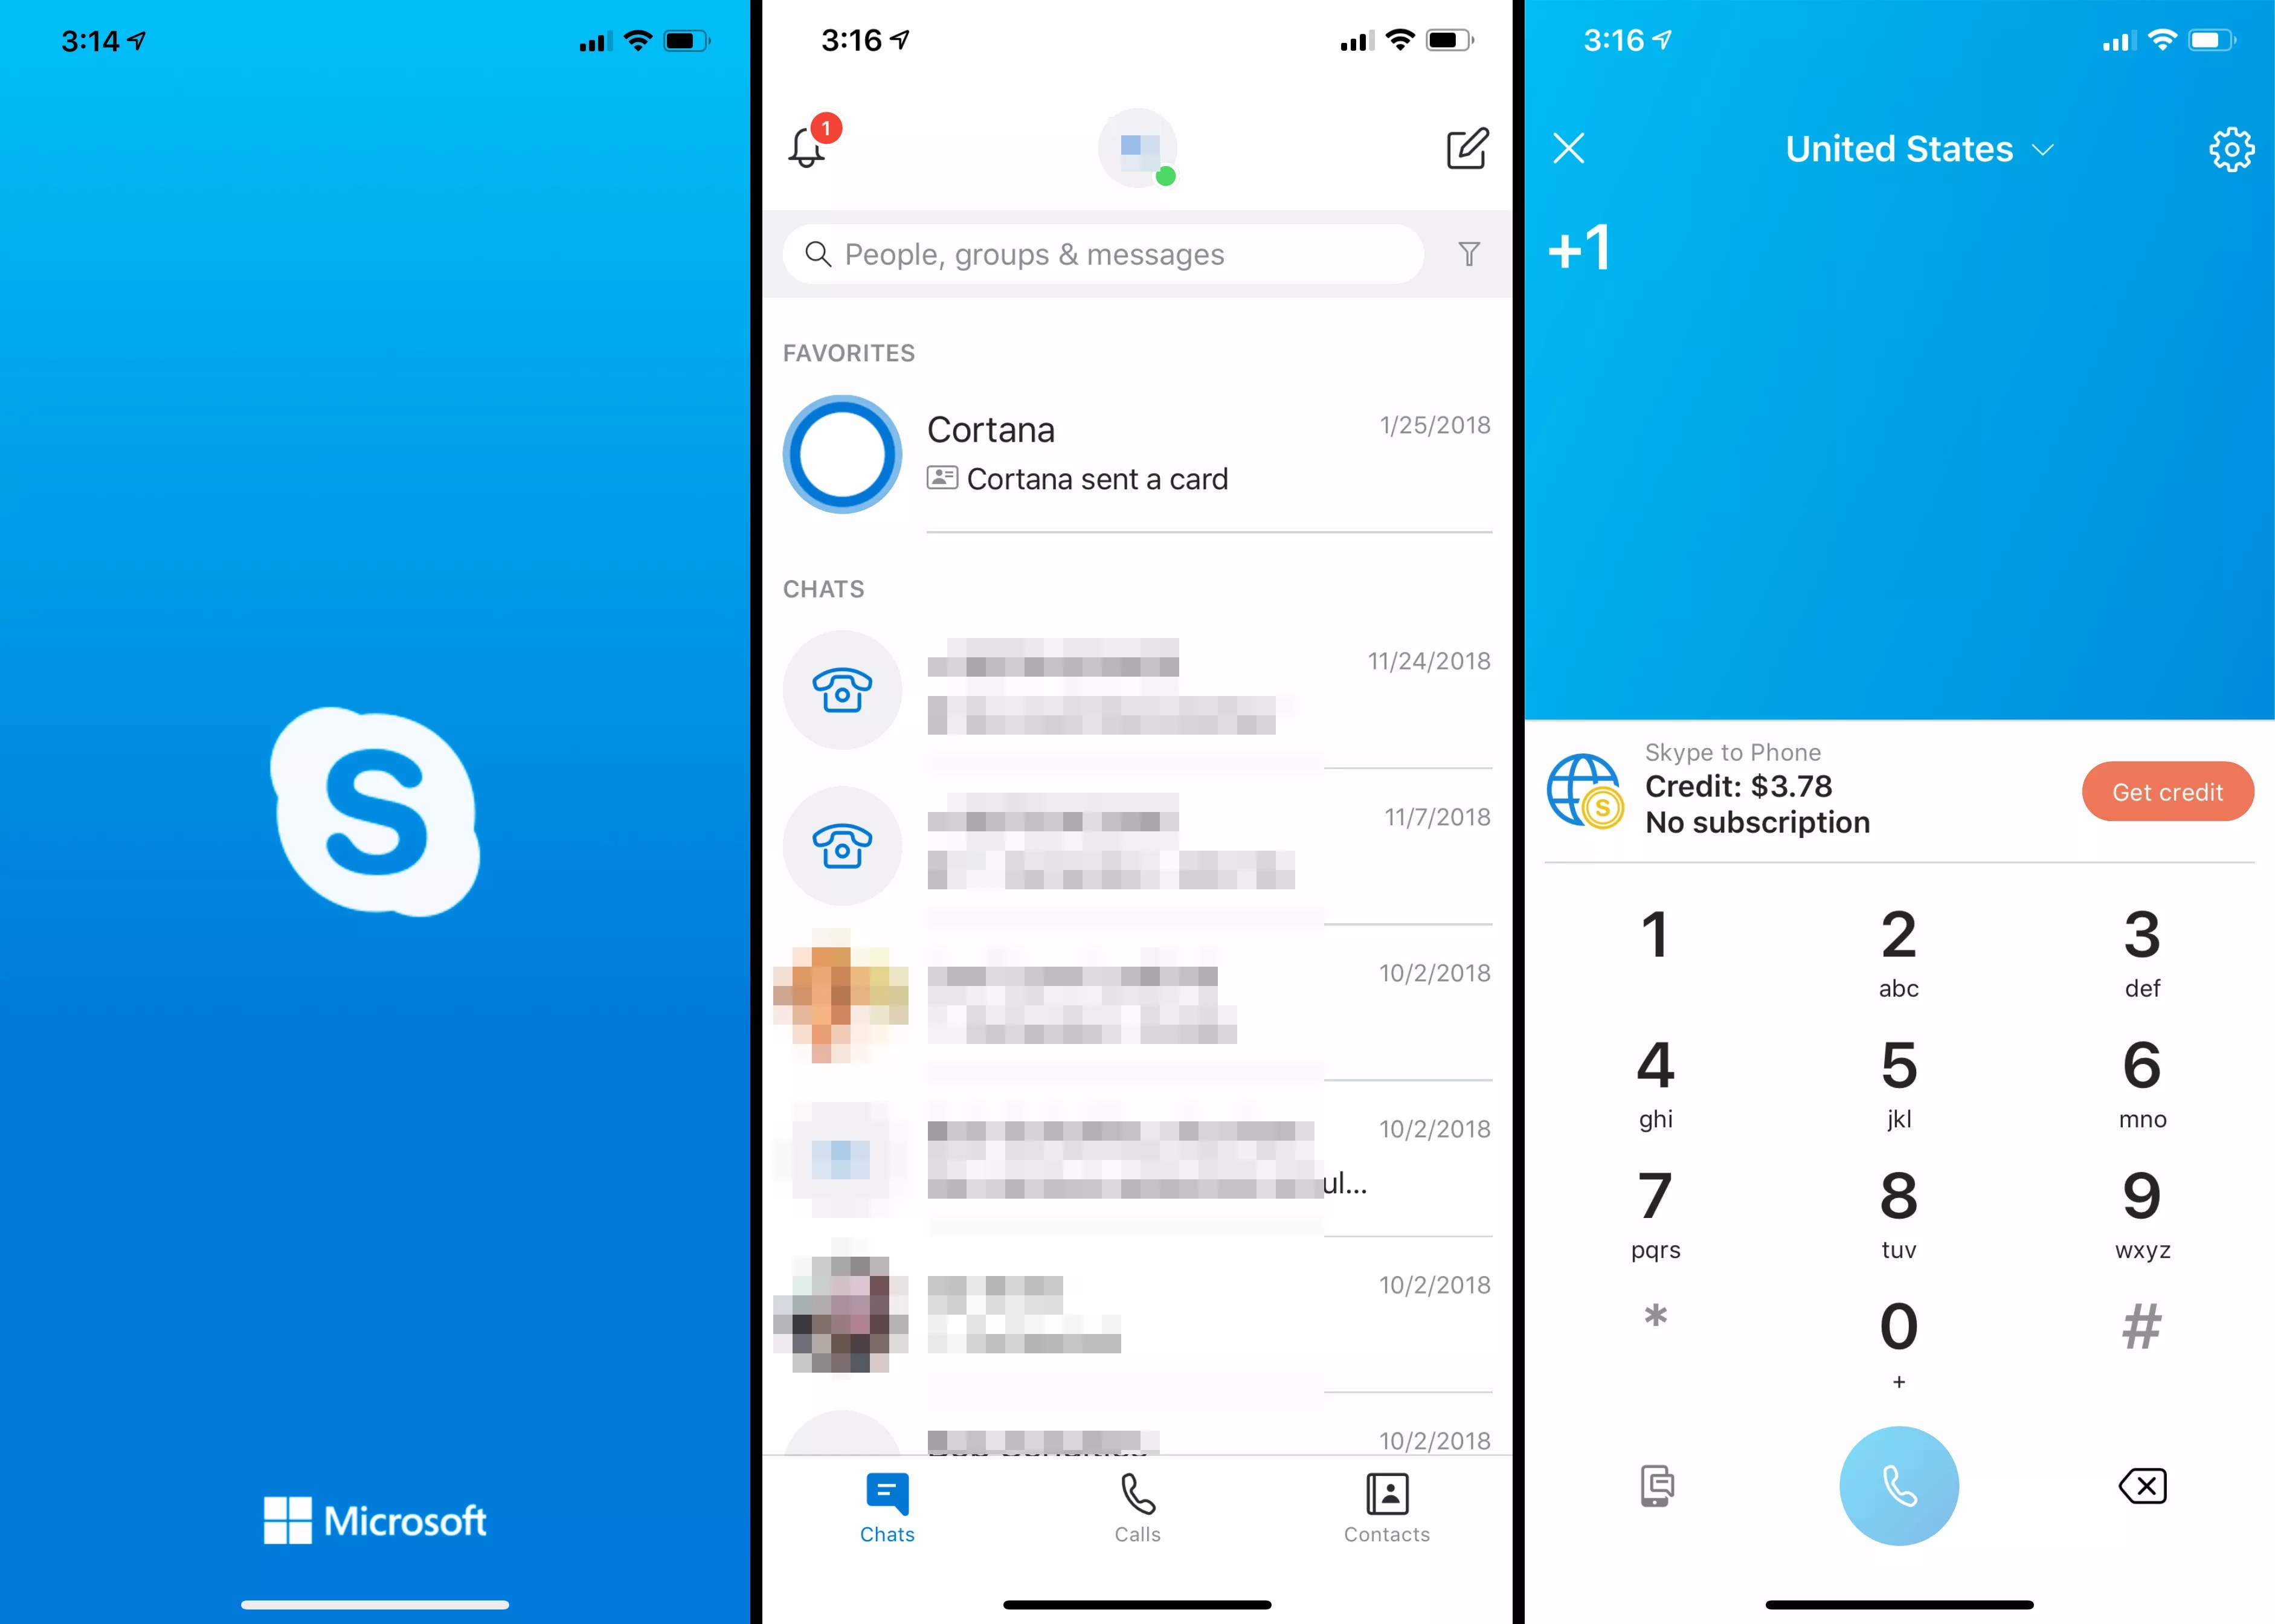 Three iOS screens from Skype app